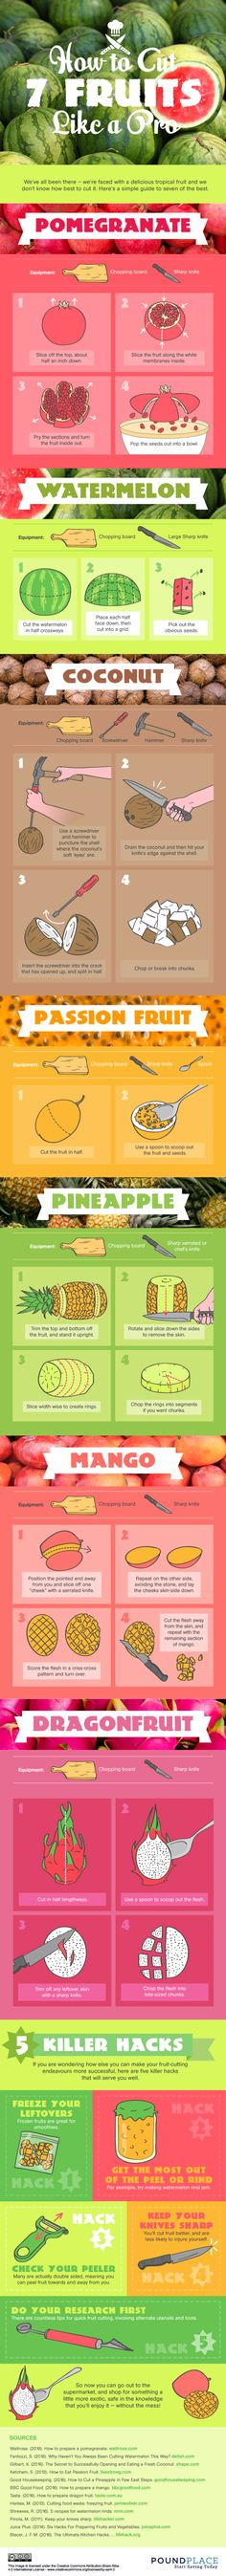 This Infographic Will Totally Change How You Cut Fruit  - CountryLiving.com